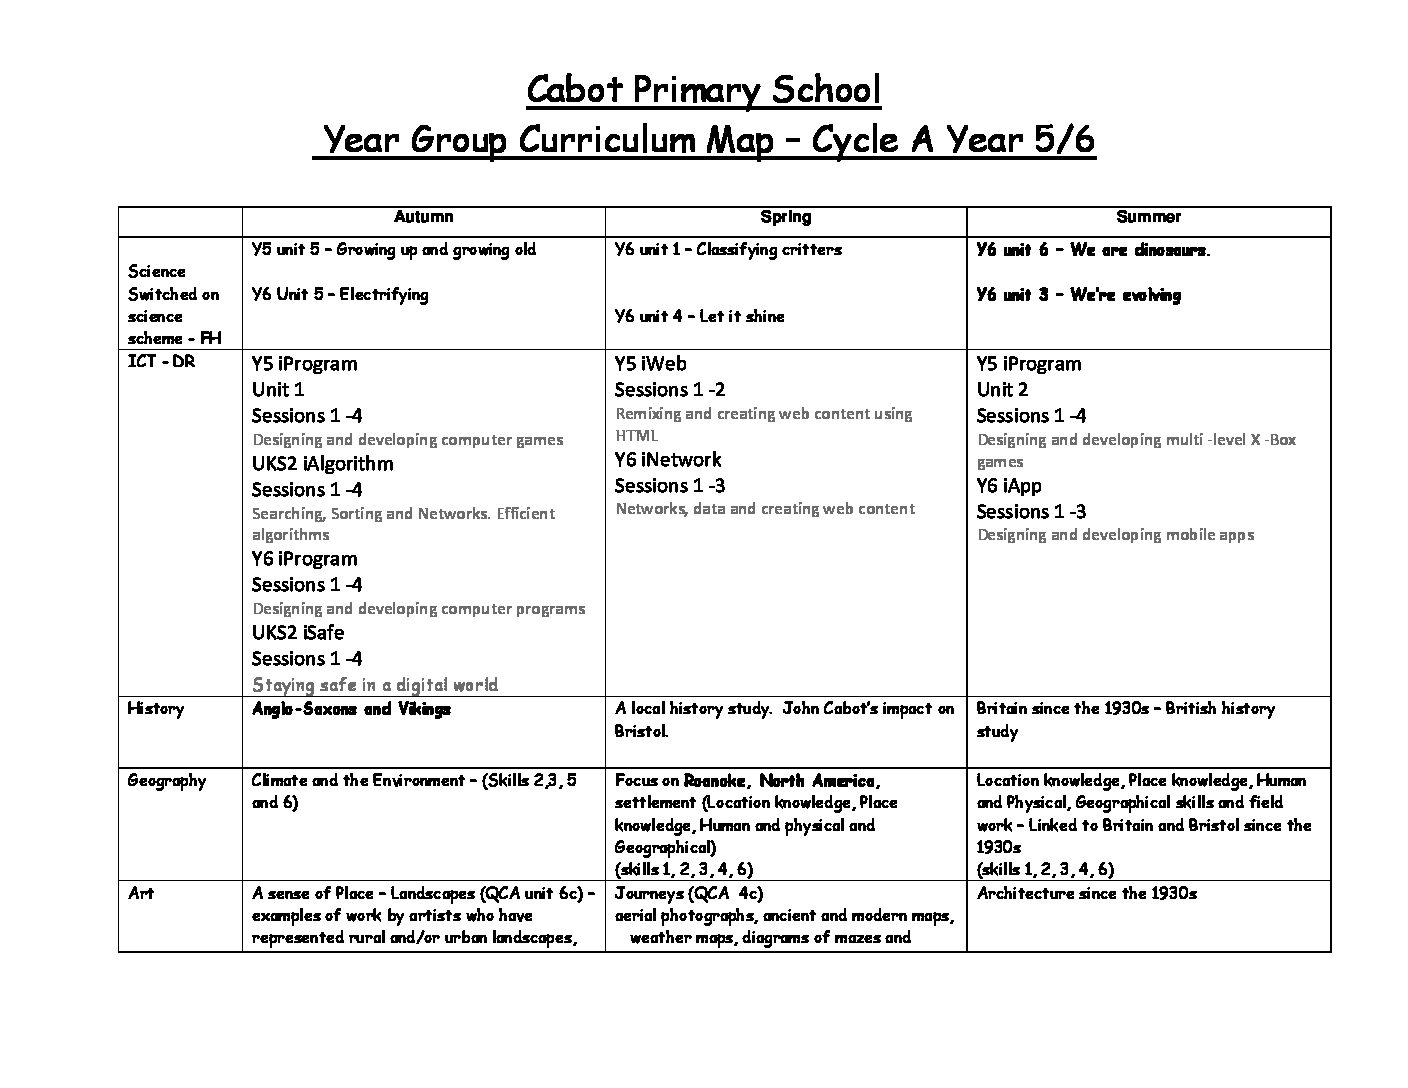 Cycle A Year 5 and Year 6 | Cabot Primary School